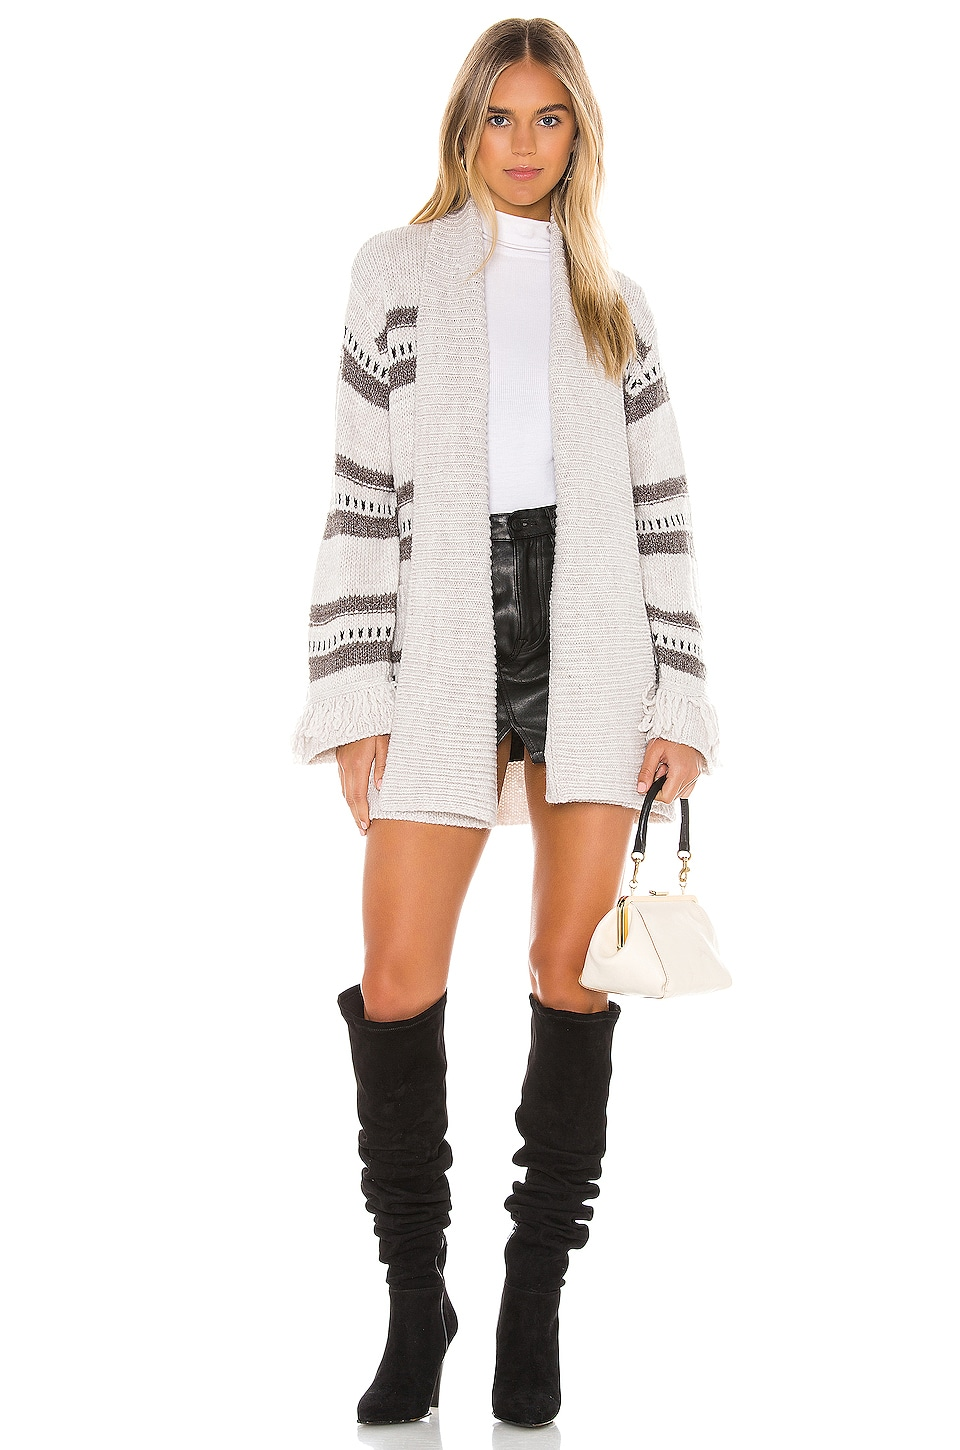 BB Dakota JACK by BB Dakota Fringe Theory Cardigan in Oatmeal